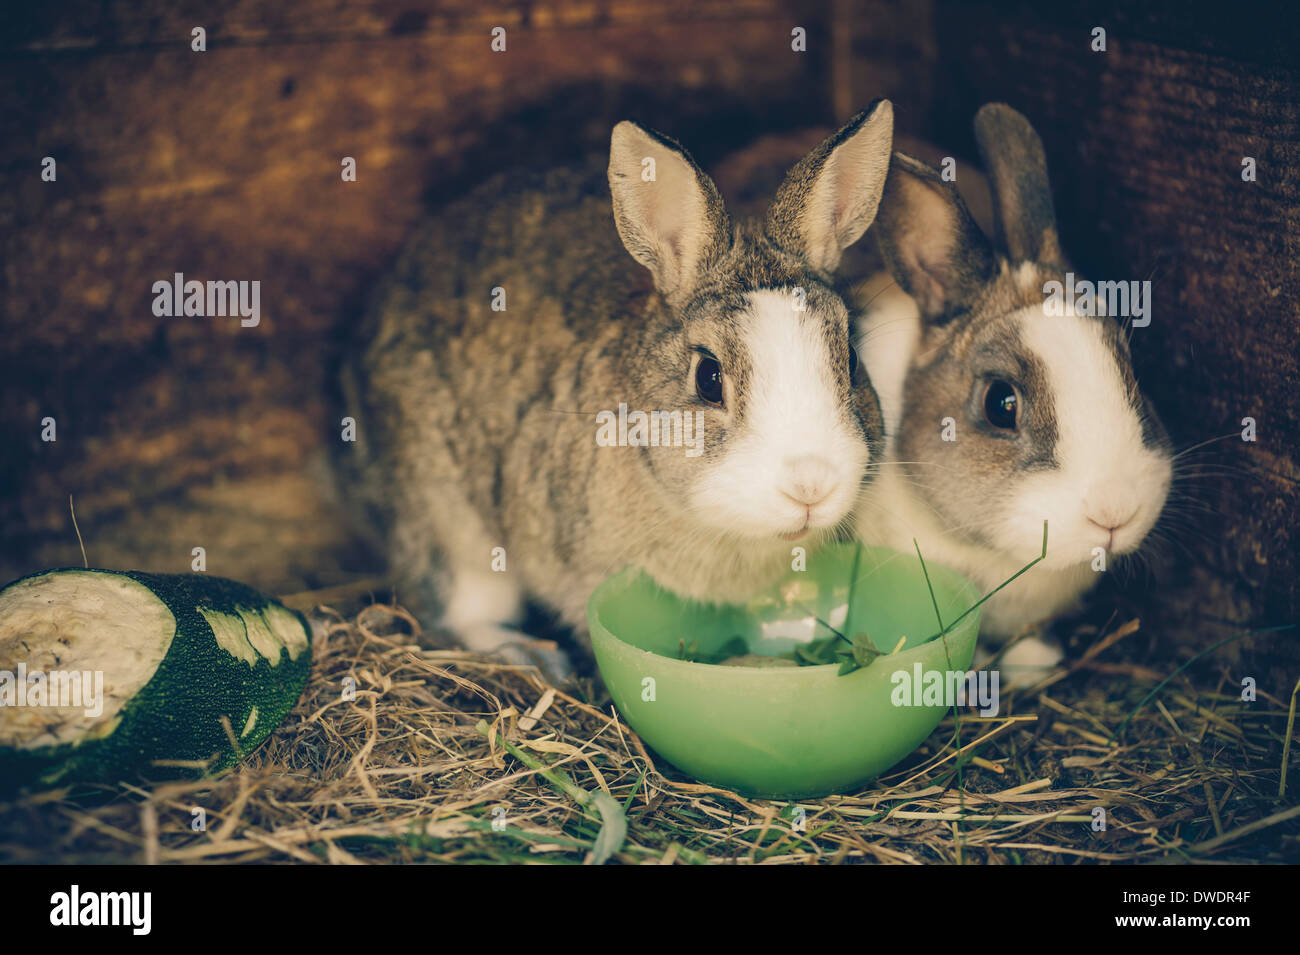 Two rabbits in stable - Stock Image